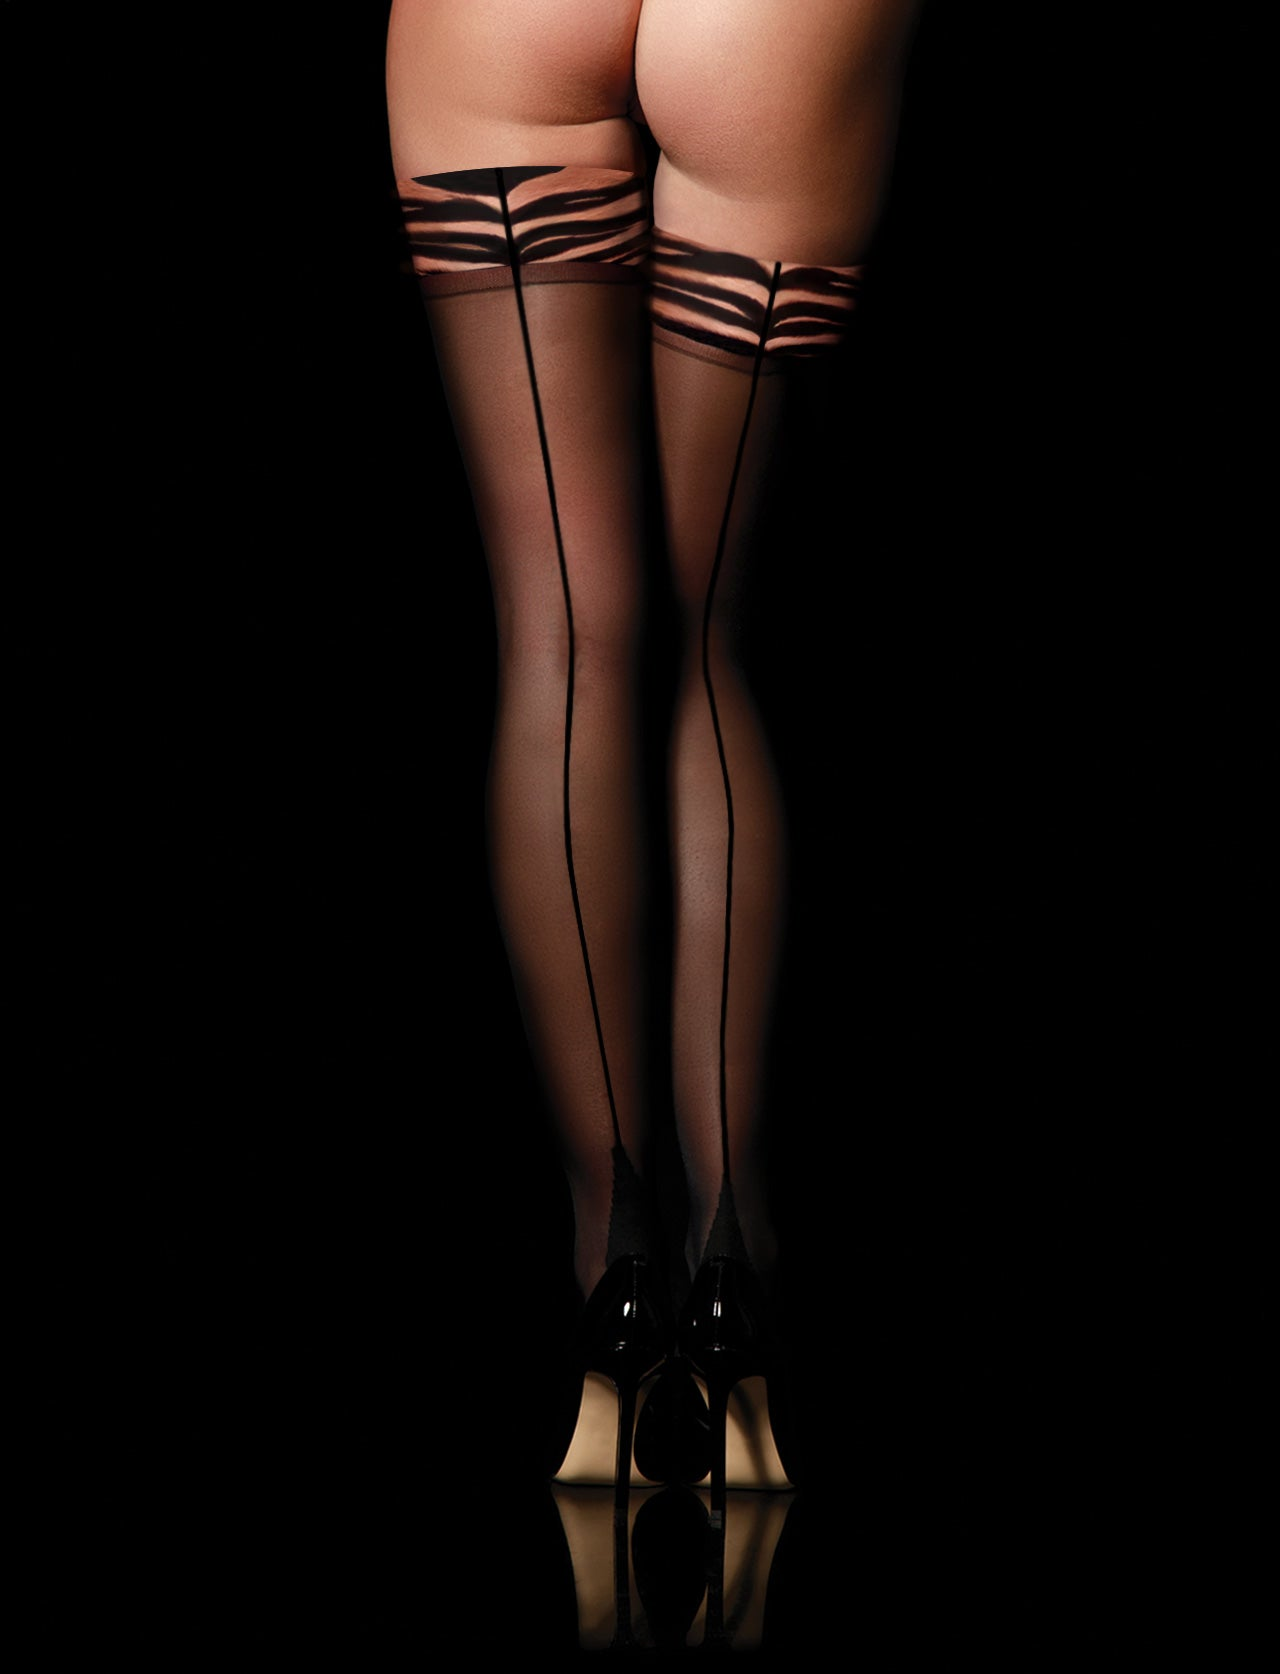 Black Betty Tiger Sheers Stay Up Stockings